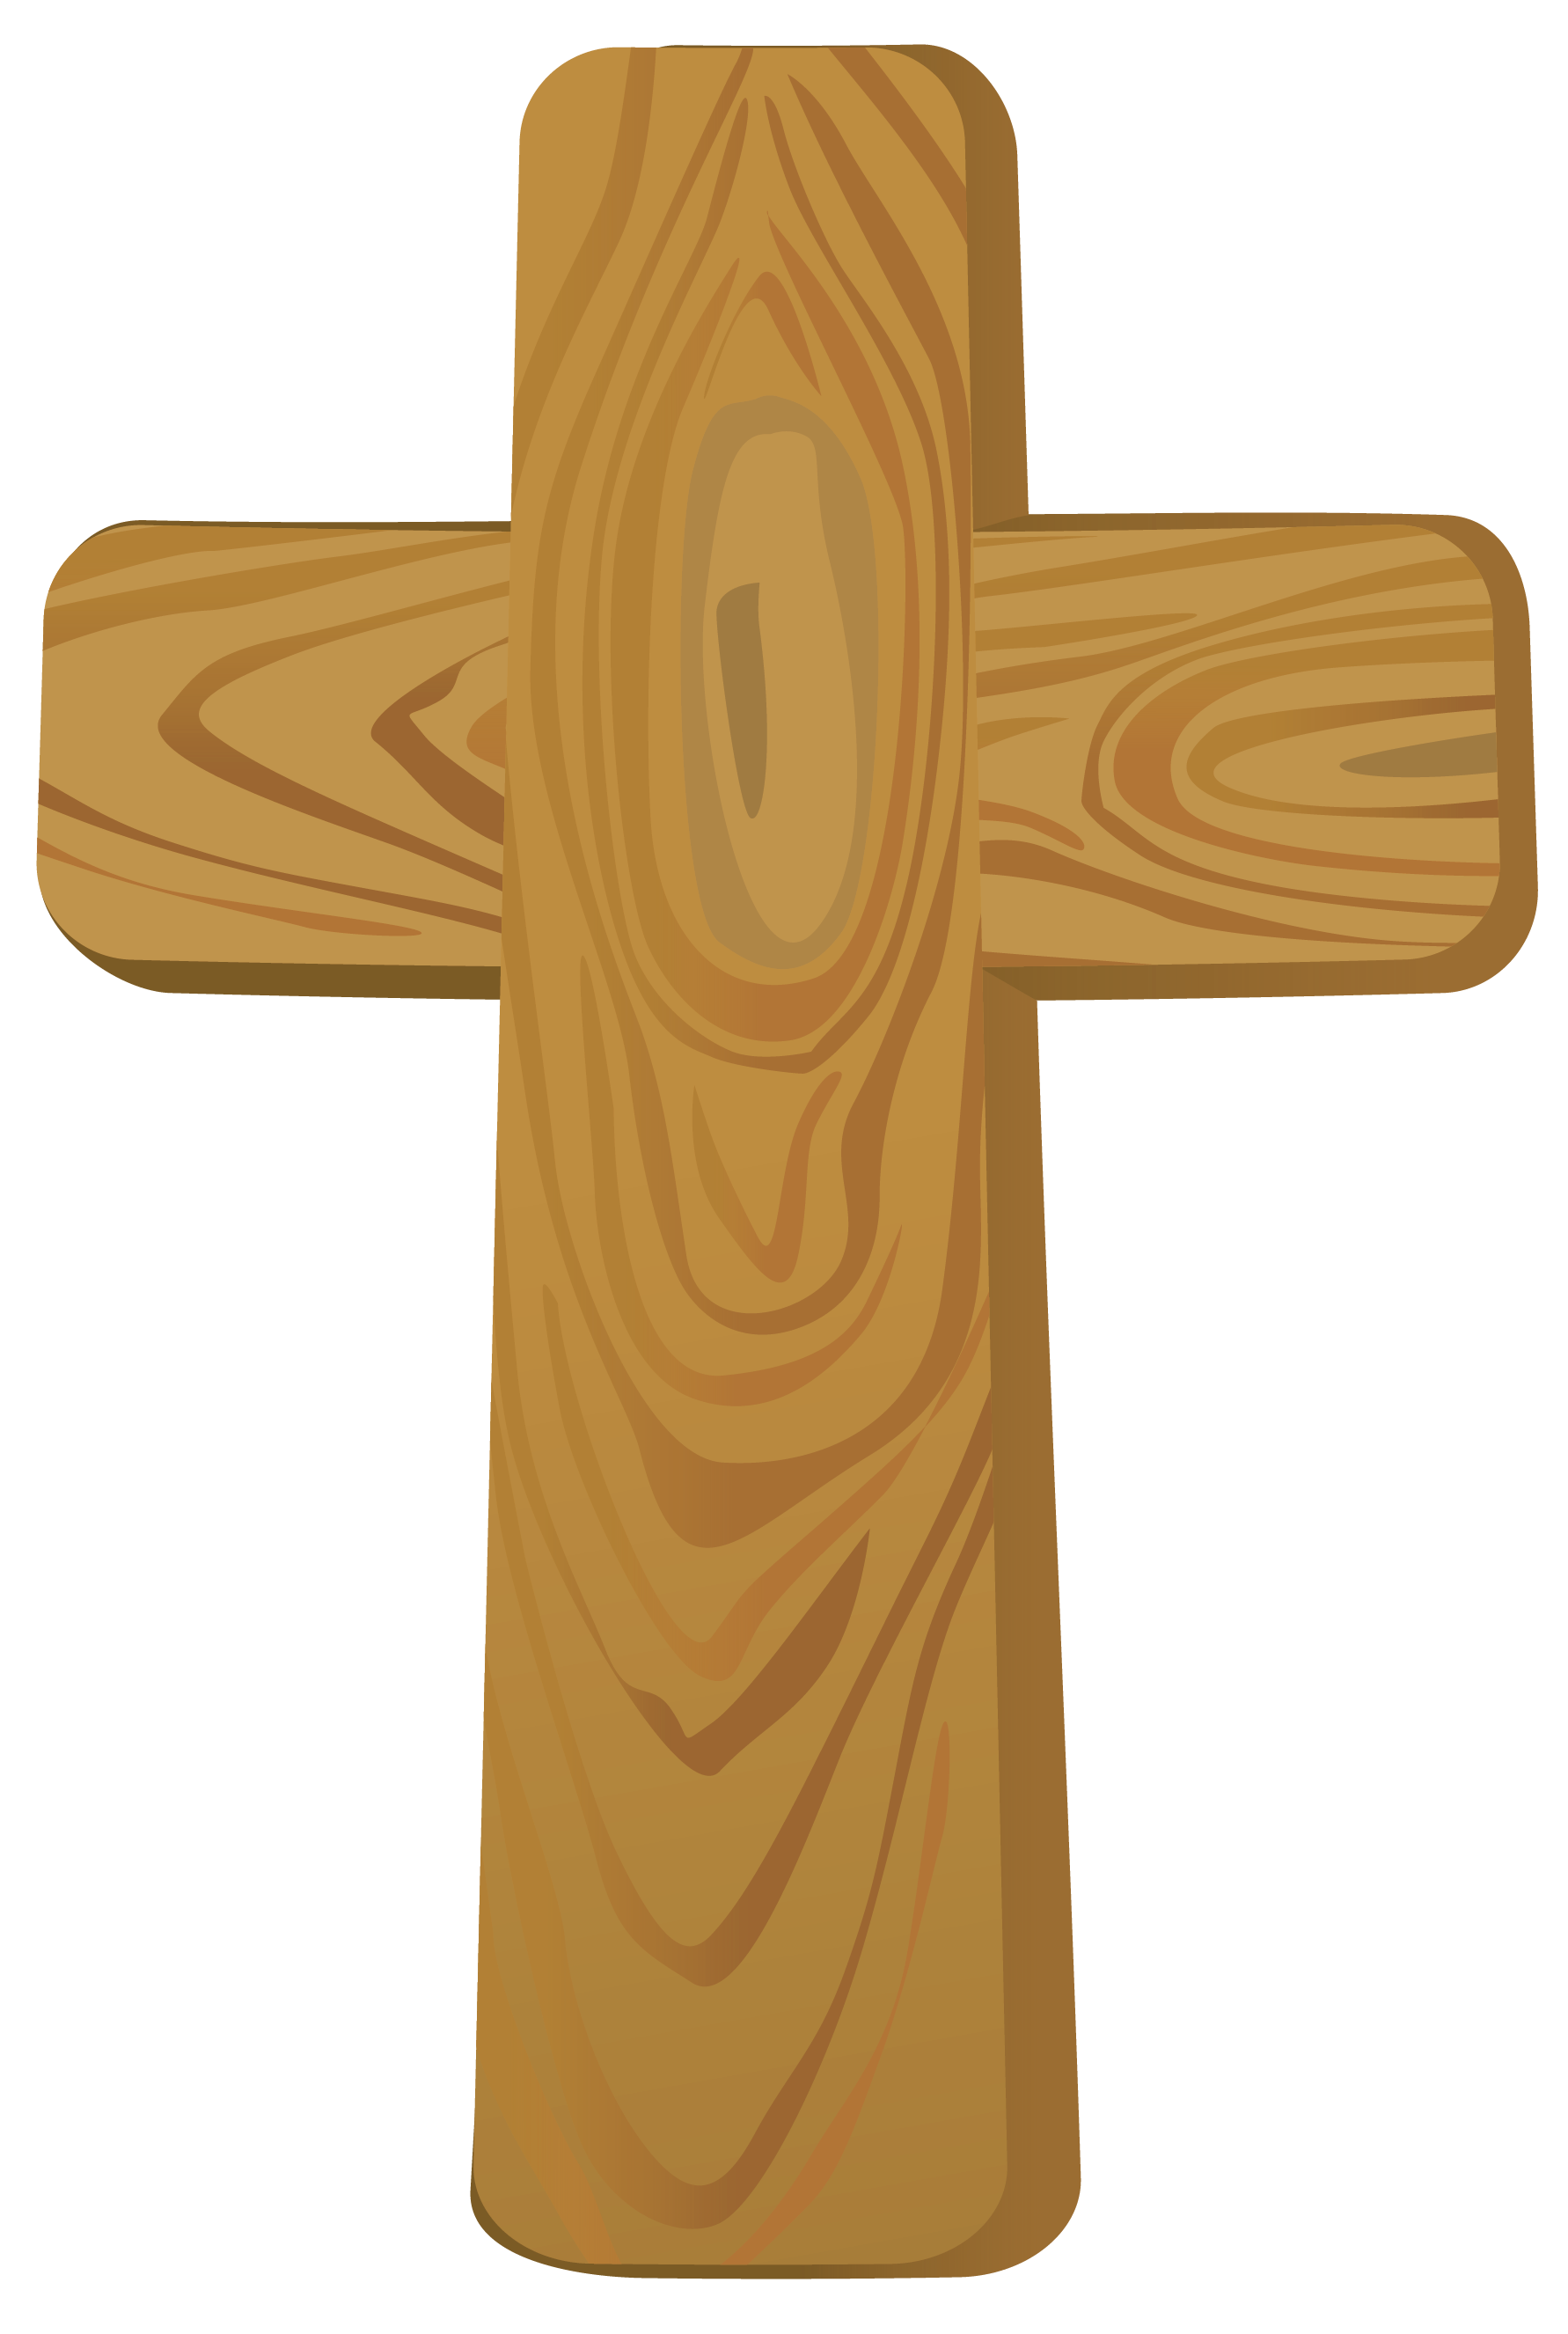 clipart freeuse stock Crucifix clipart. Png hd transparent images